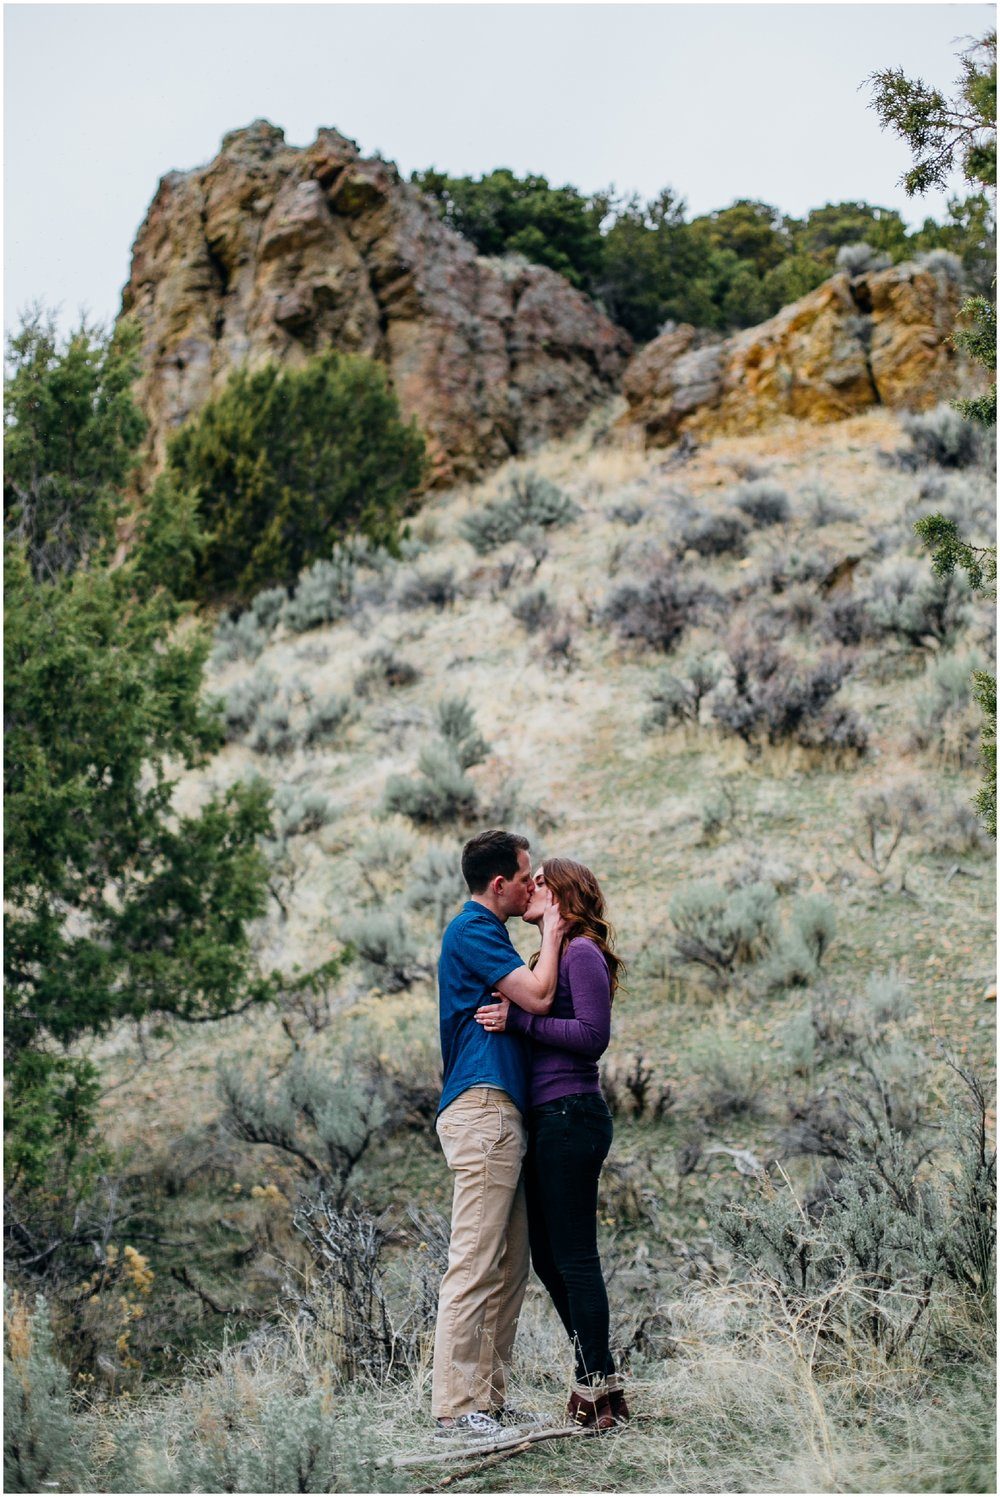 idaho-adventure-photographer-kelly-canyon-idaho-falls-engagements-wyoming-engagements-colorado-wyoming-wedding-photographer_1116.jpg